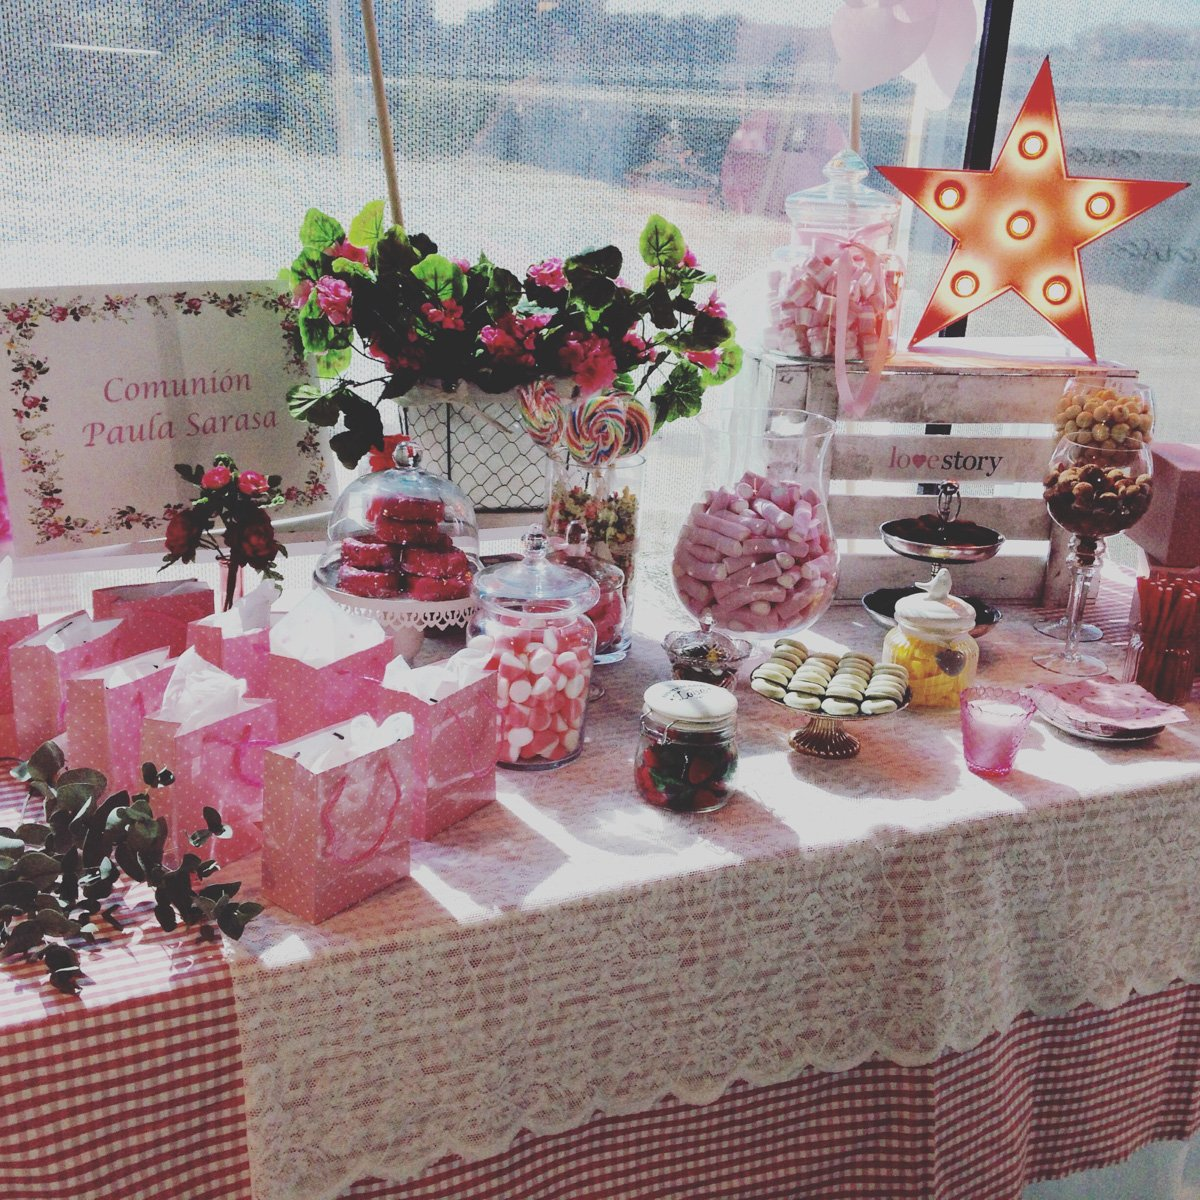 candy bar boda lovestory - decoracion boda zaragoza